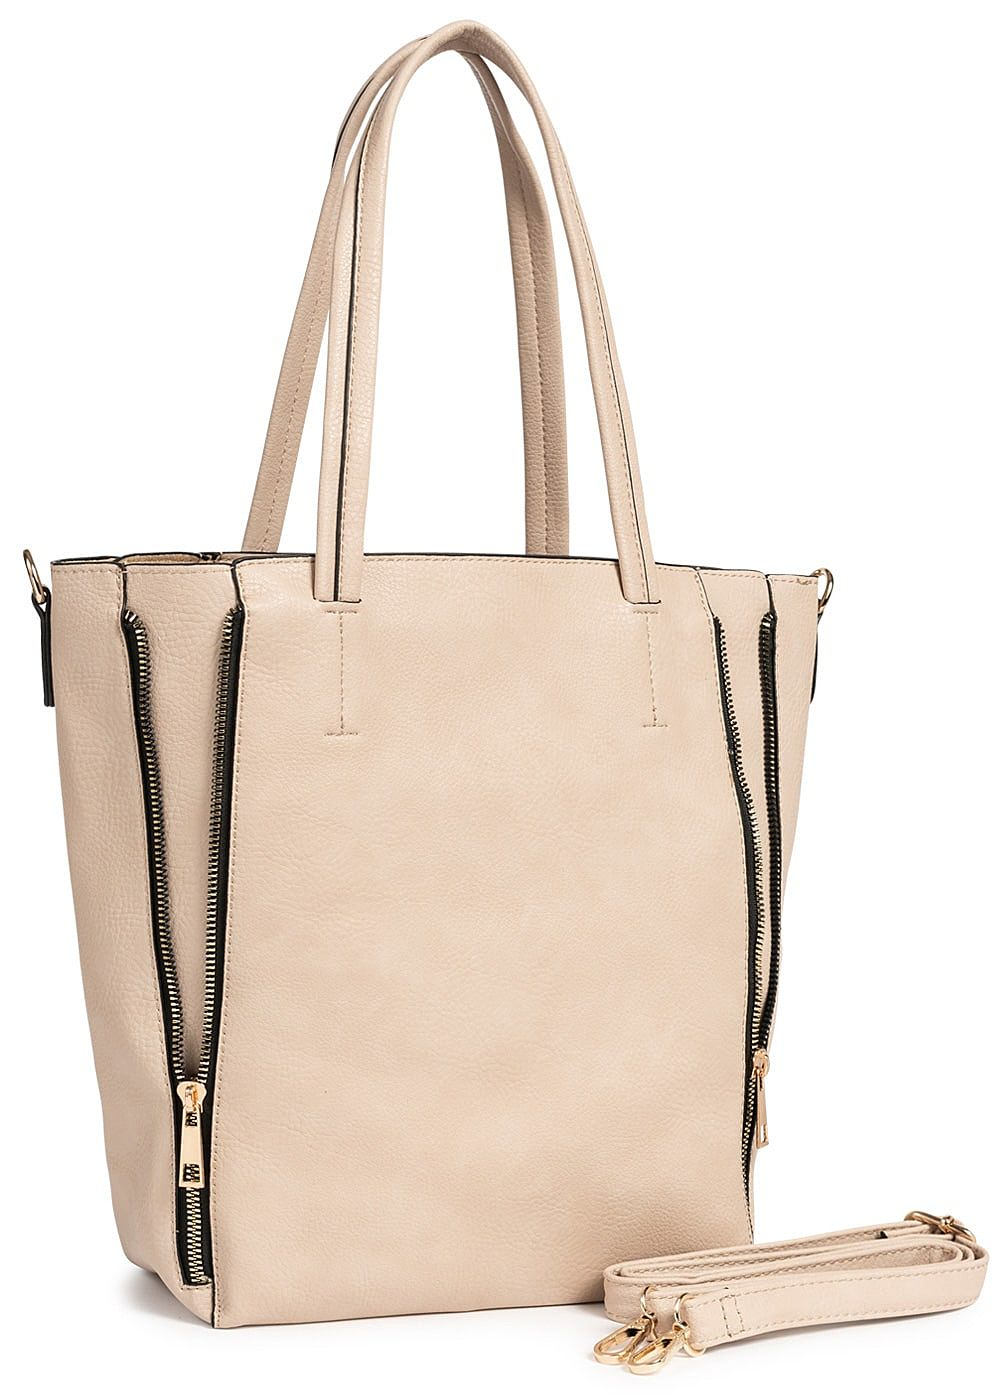 Styleboom Fashion Damen 2in1 Tote Zip Bag hell rosa pink - Art.-Nr.: 19030786-OS-RS